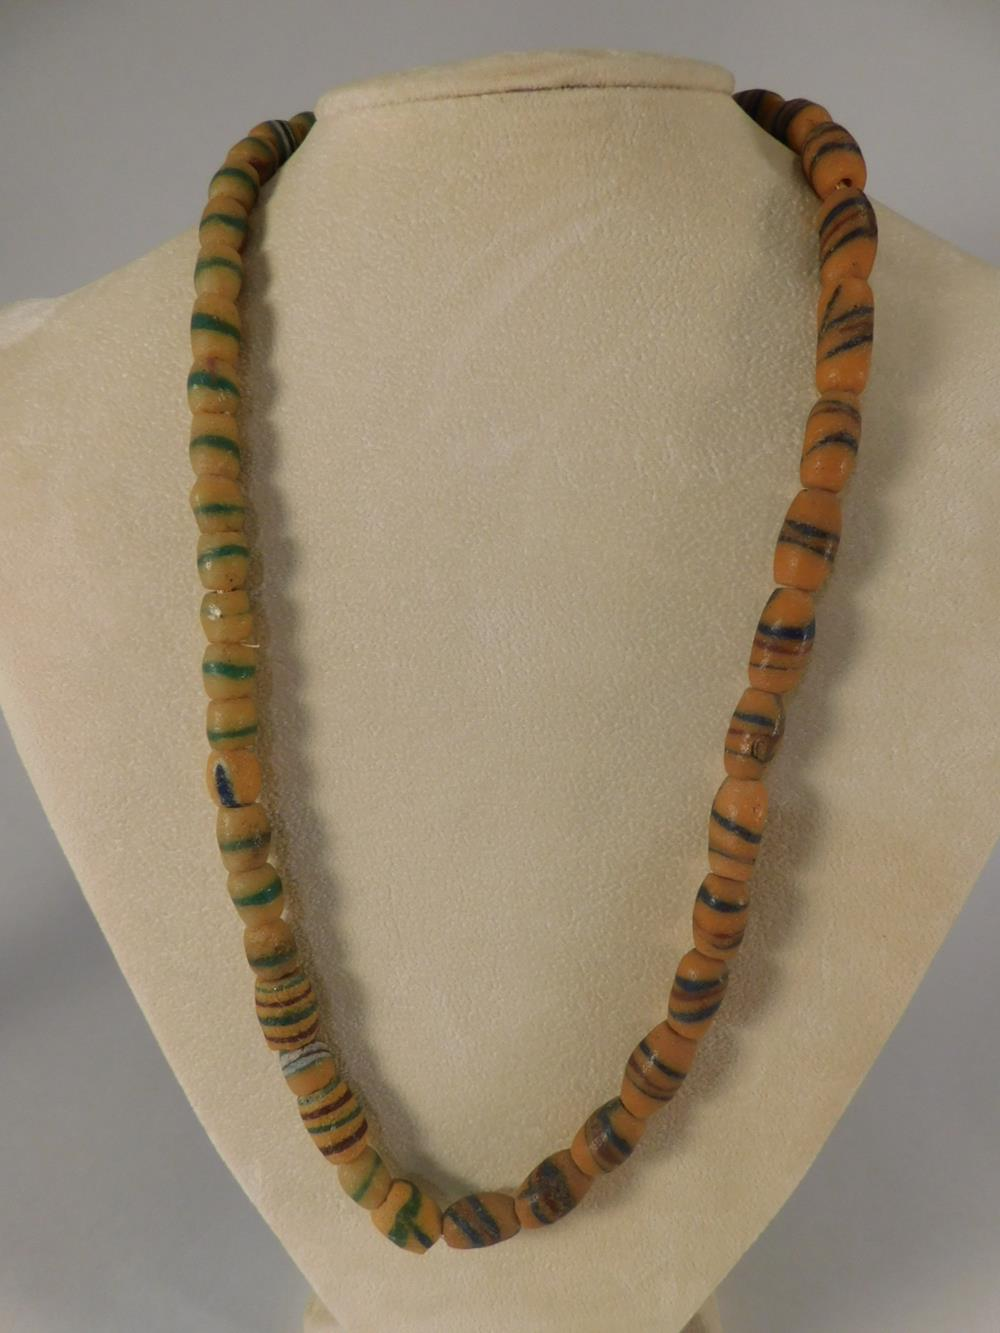 RARE OLD AFRICAN TRADE BEAD LARGE STRAND EACH BEAD UNIQUE